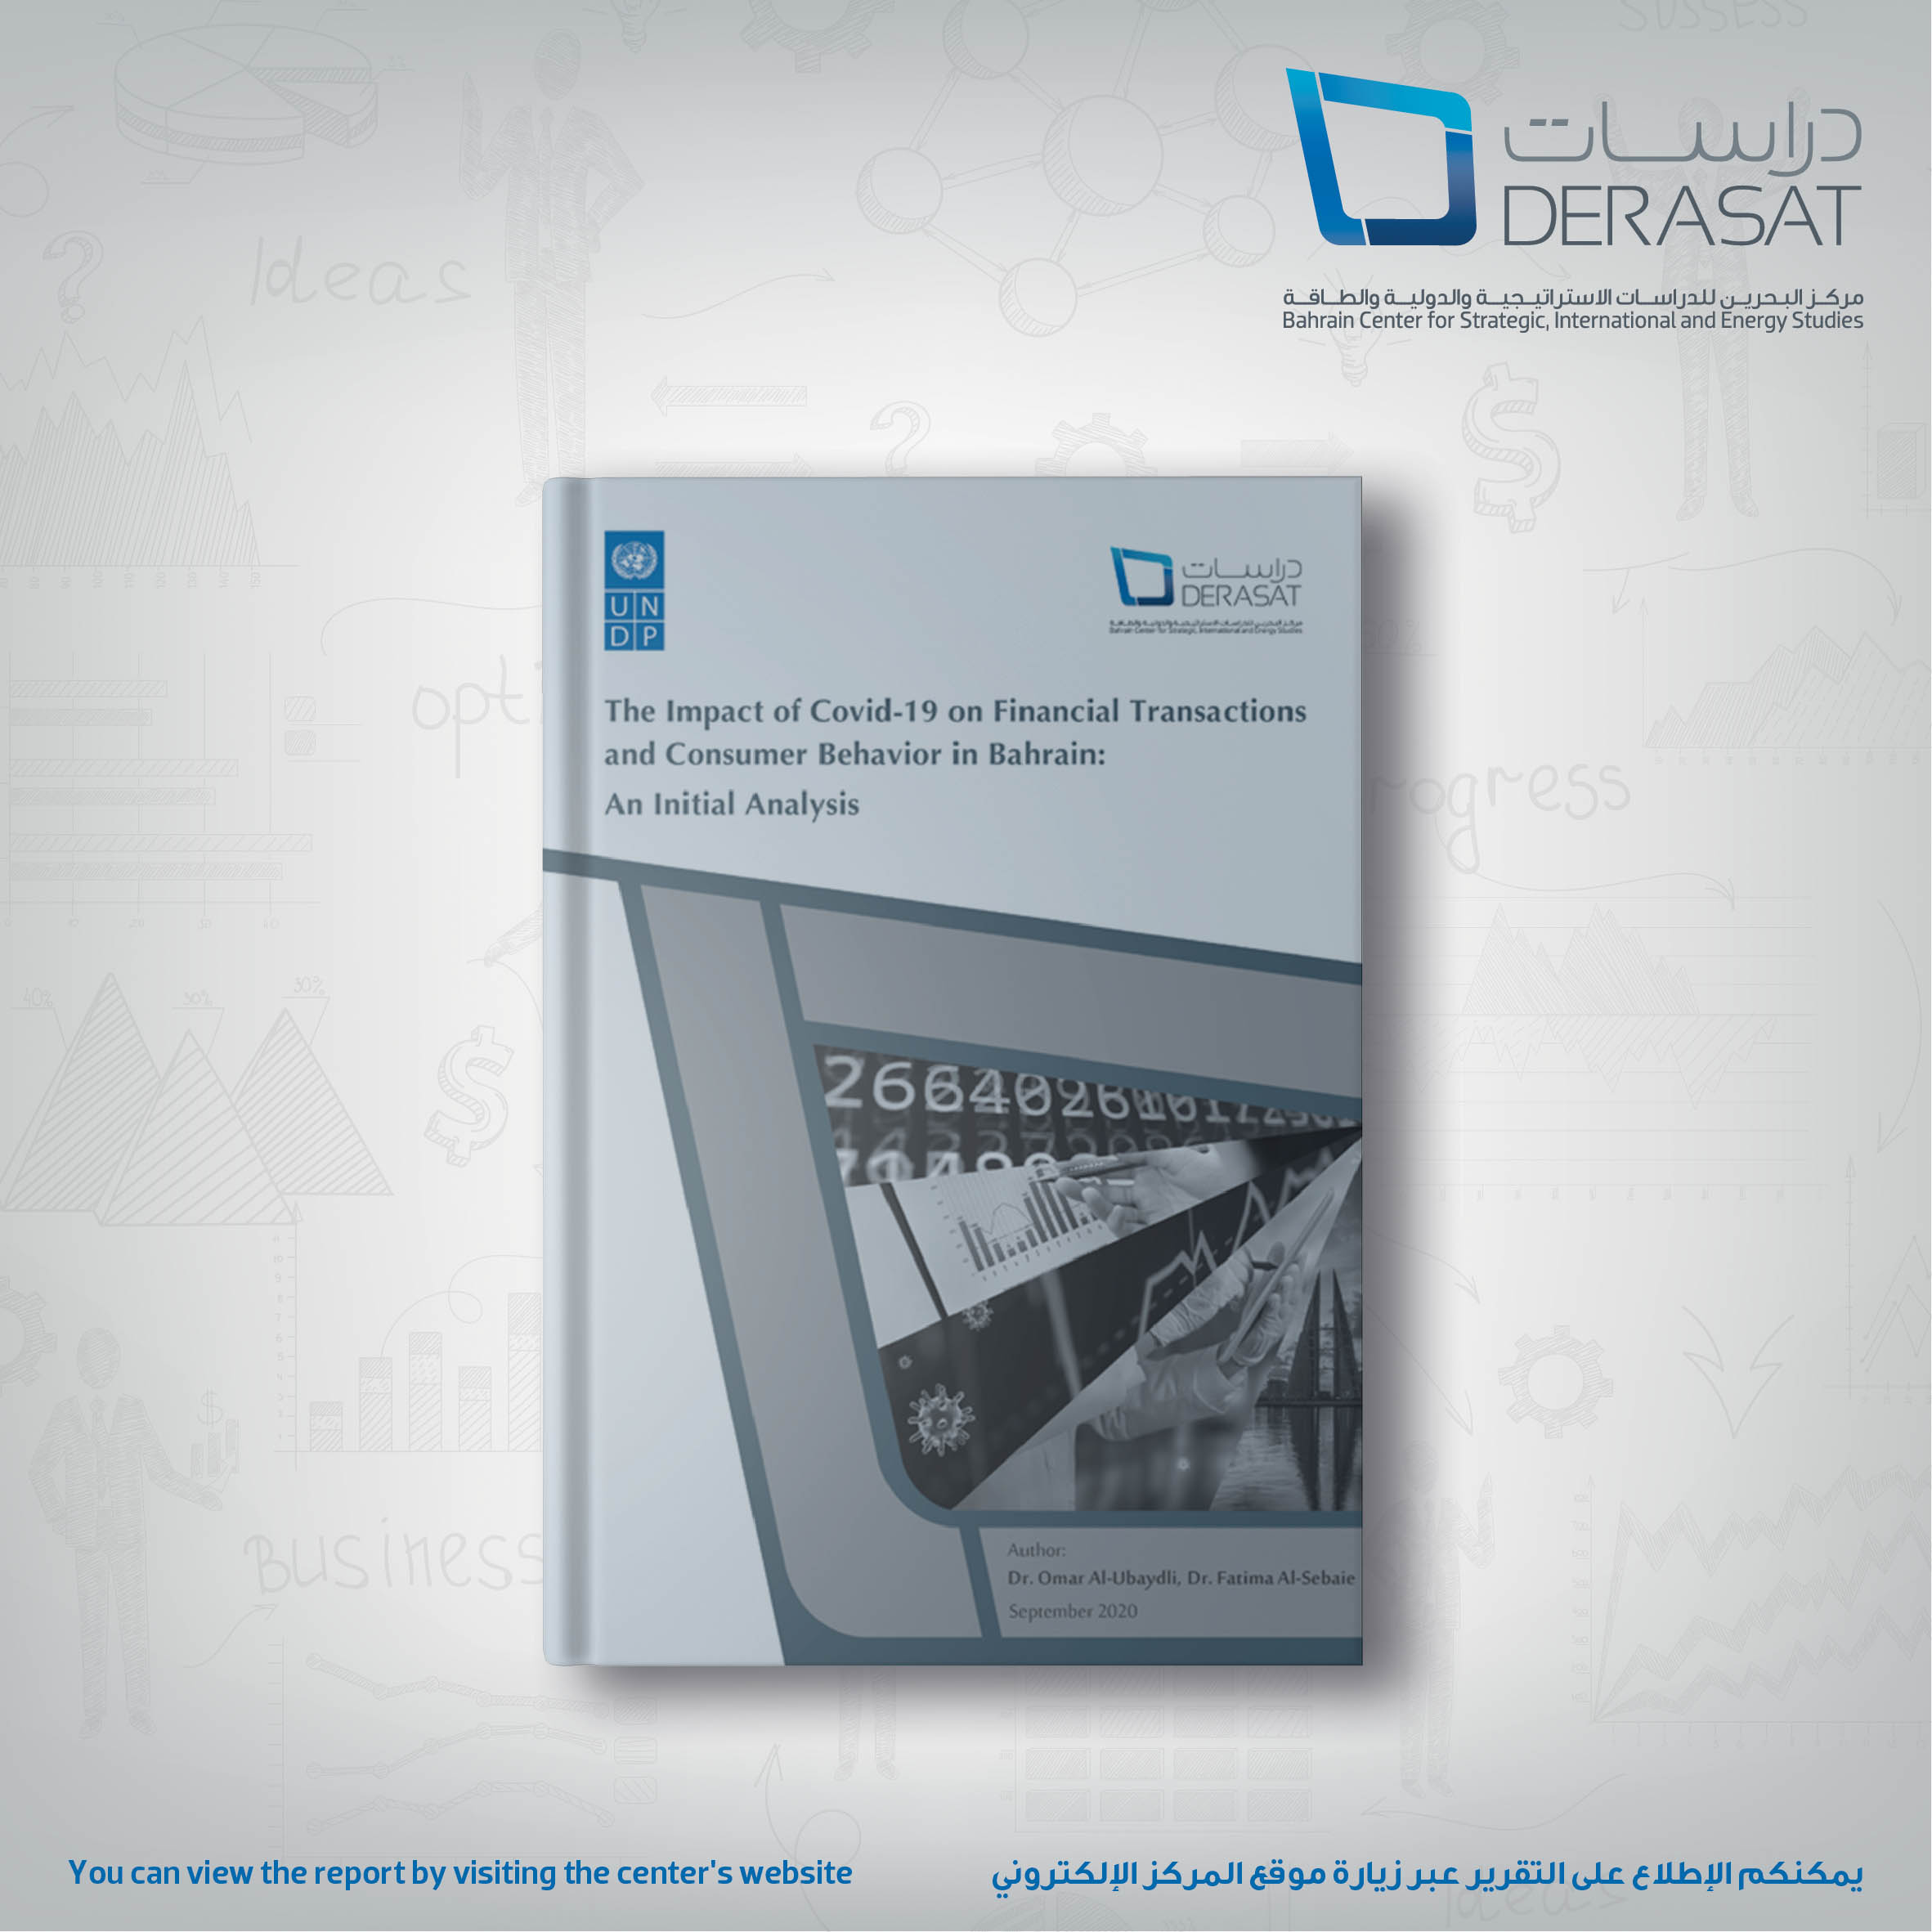 The Impact of the COVID-19 on Financial Transactions and Consumer Behavior in Bahrain: An Initial Analysis